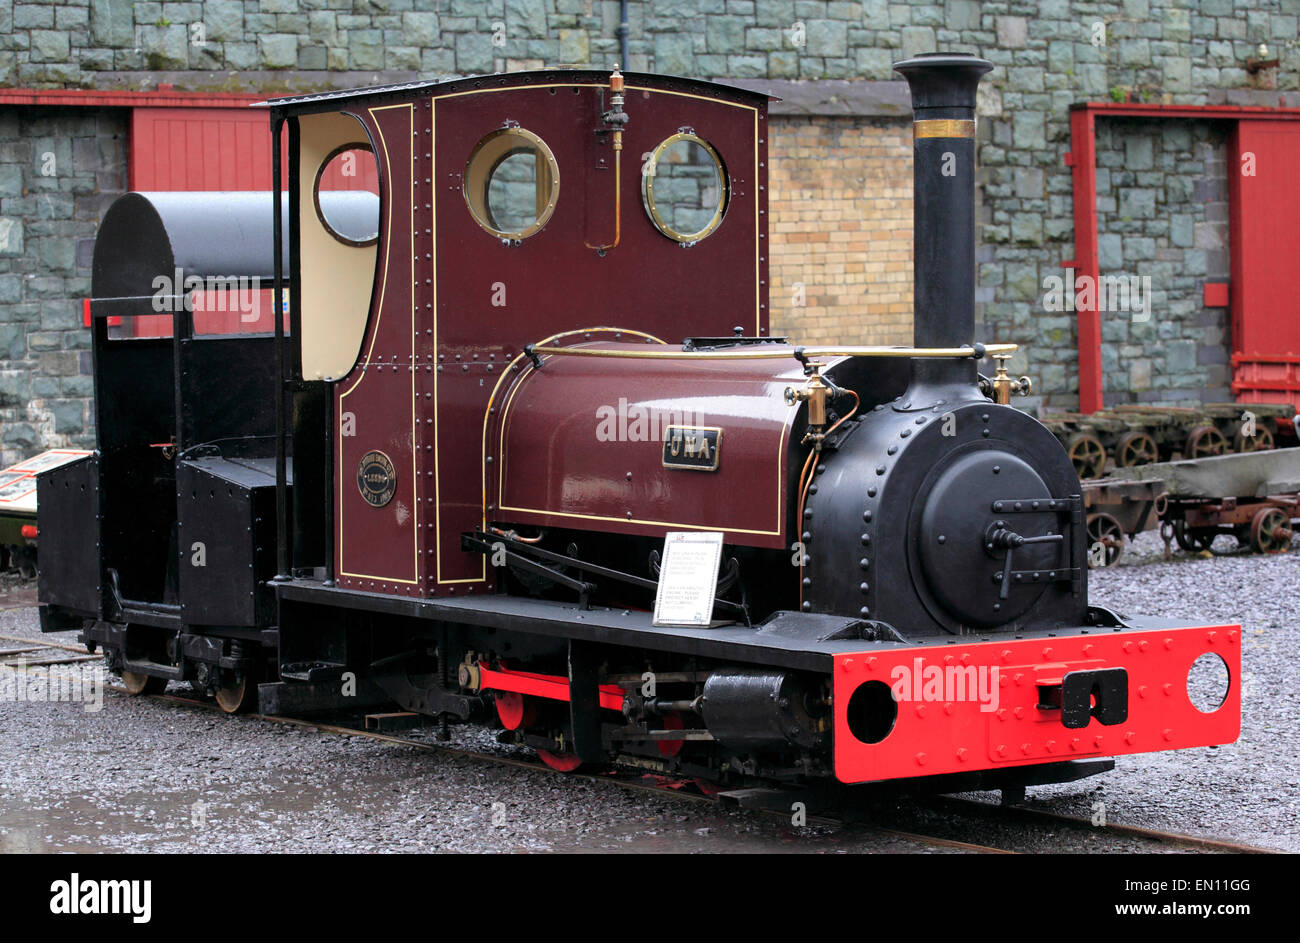 Recently restored Hunslett 0-4-0 narrow gauge steam locomotive Una on display at the National Slate Museum, Llanberis, - Stock Image